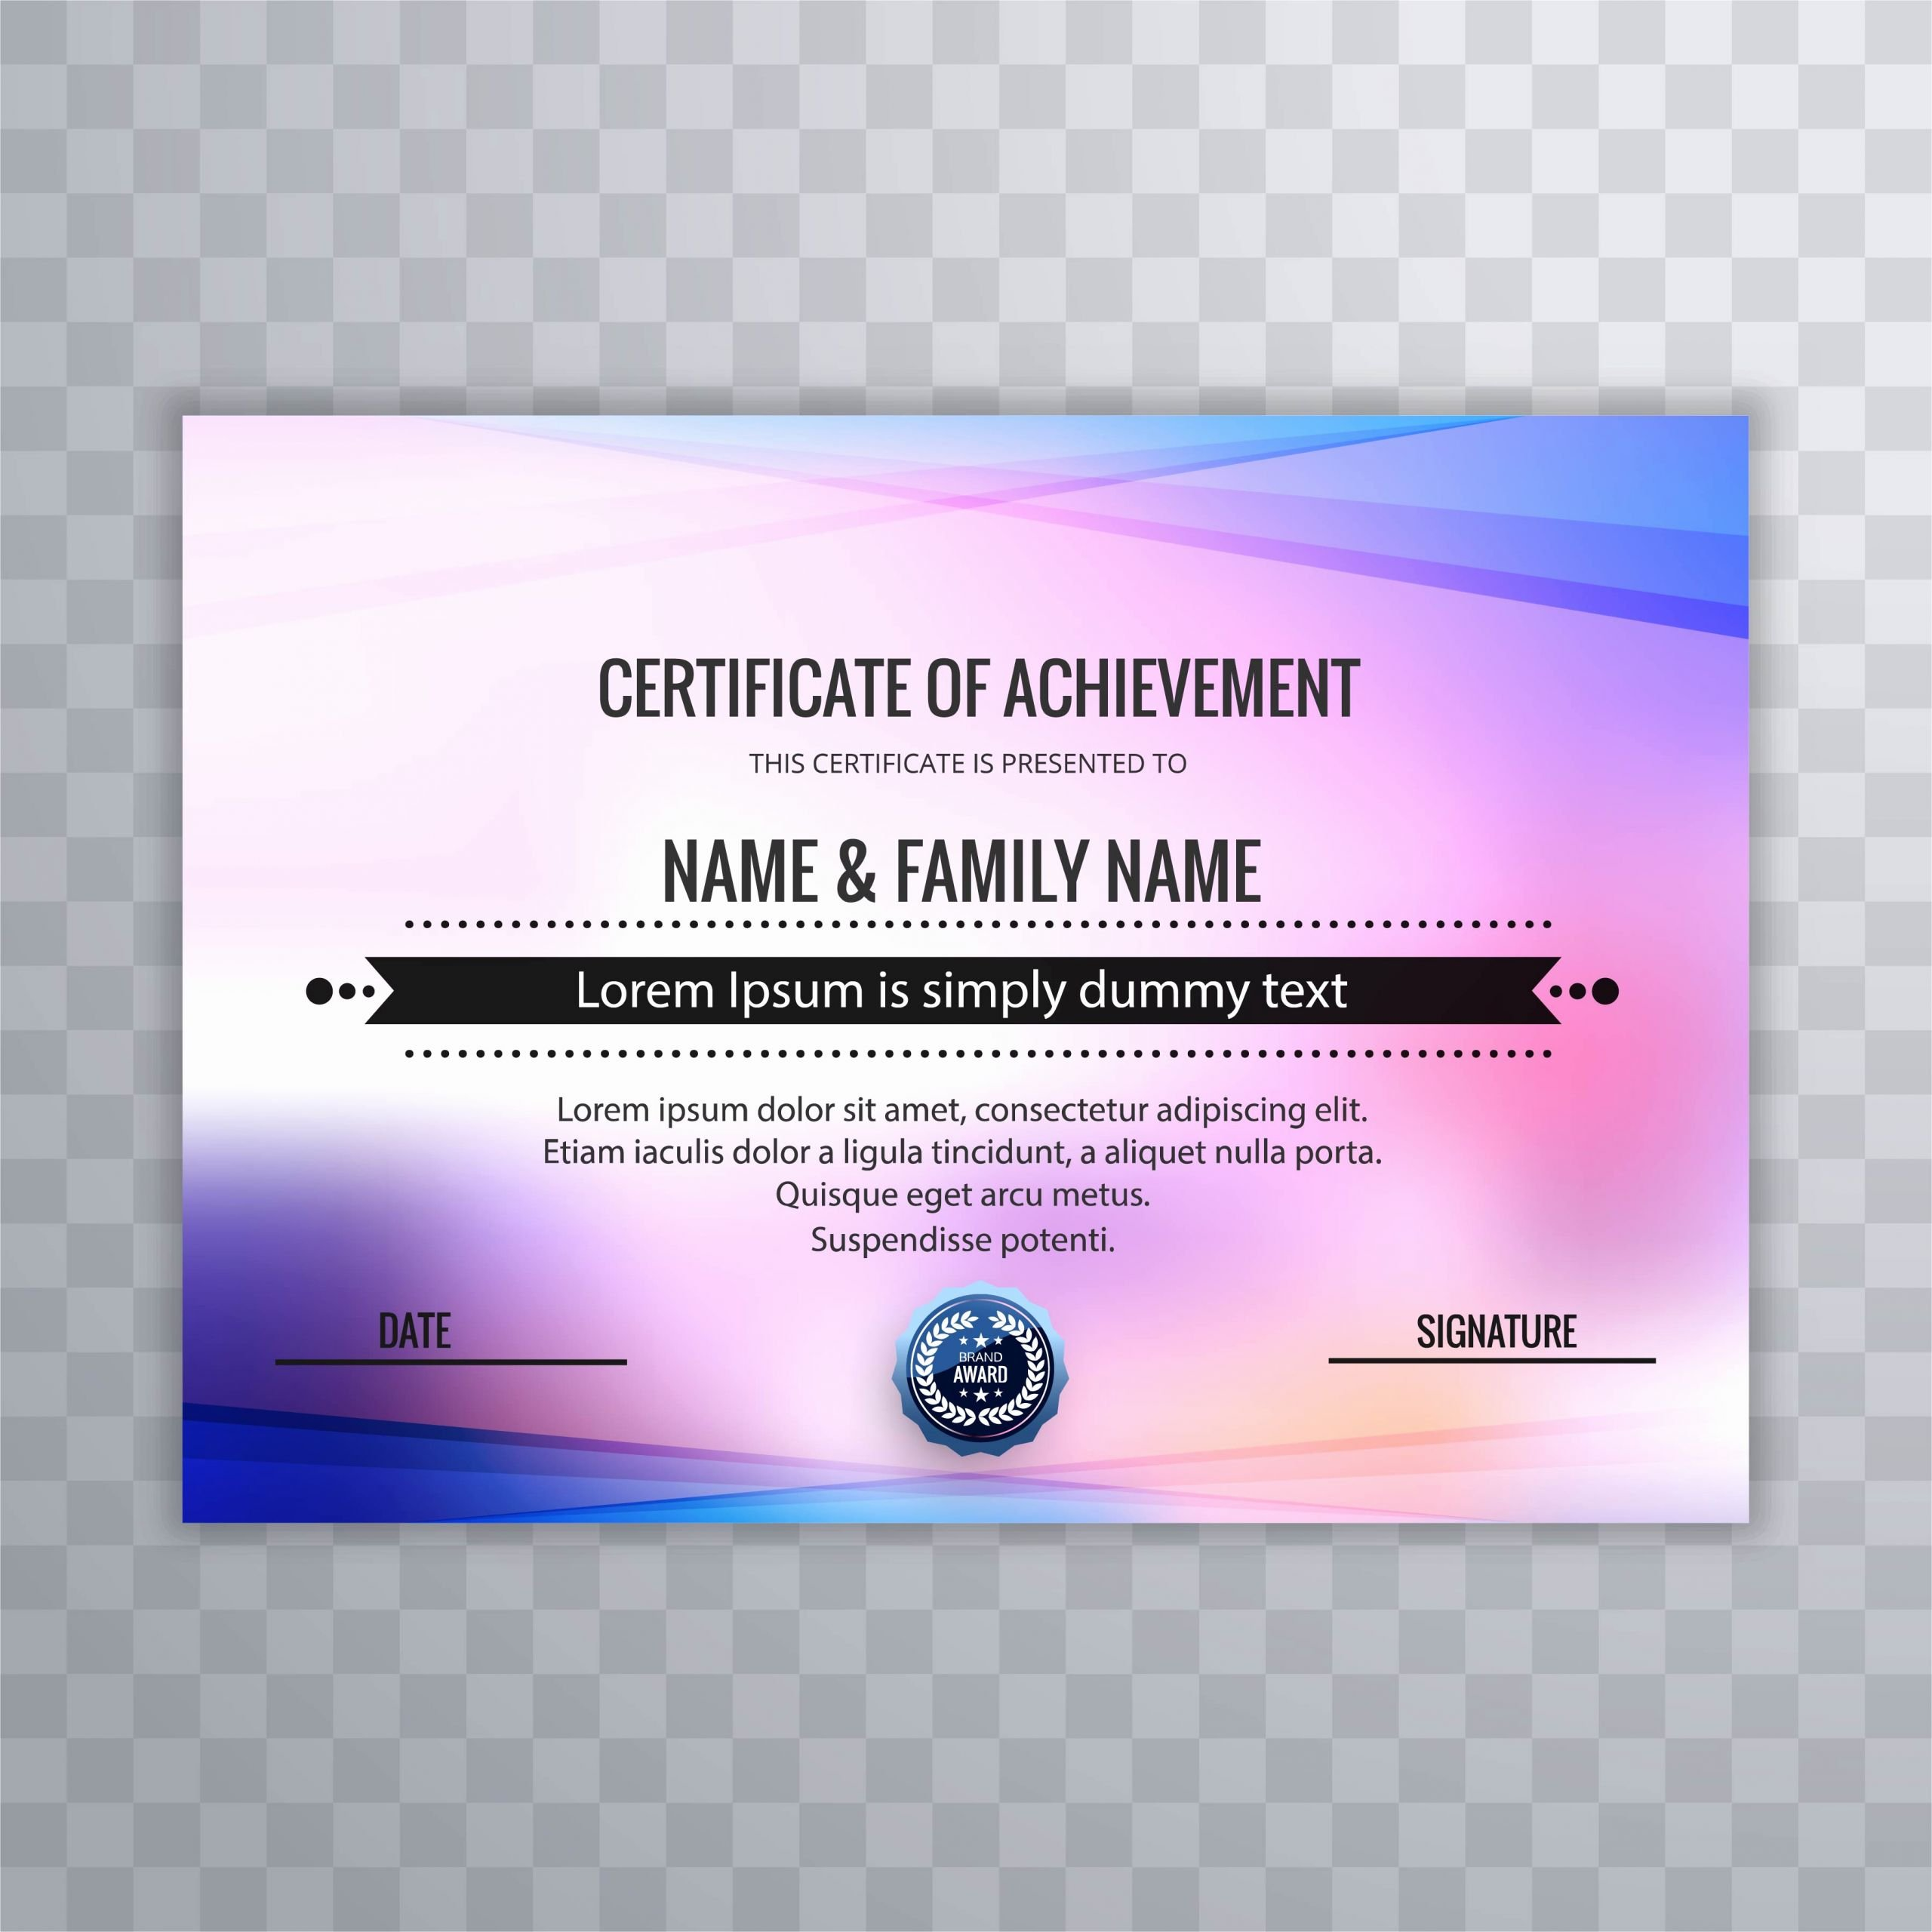 Film Festival Award Certificate Template Beautiful Certificate Of Appreciation Template with Colorful Design